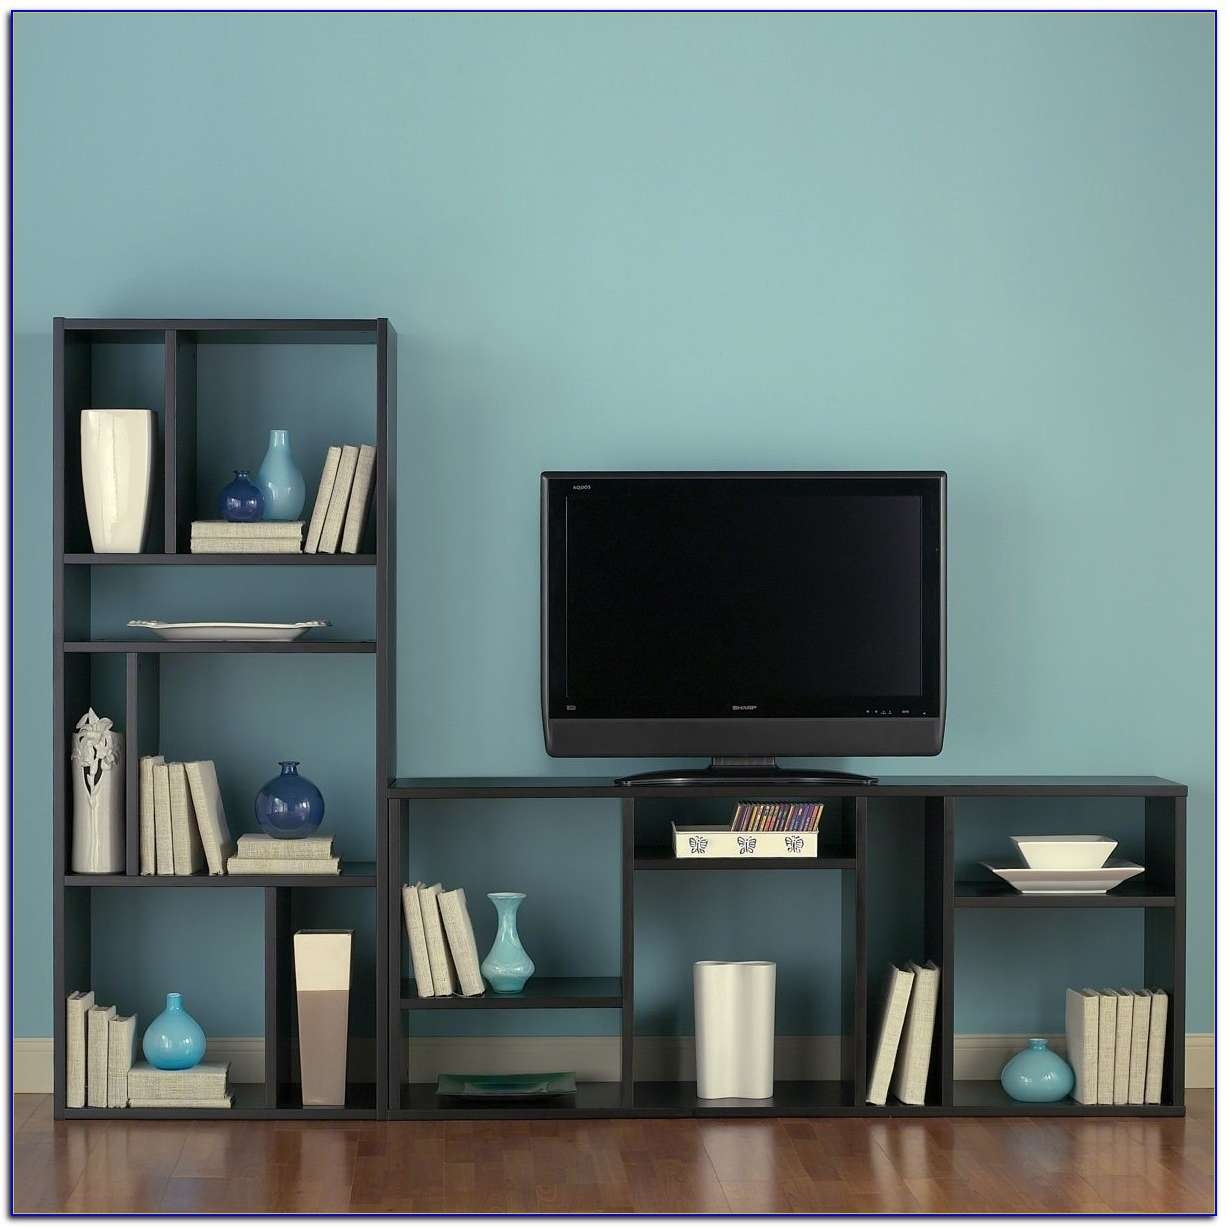 Tv Stand With Matching Bookcases – Bookcase : 59804 #a87Eanq761 With Tv Stands With Matching Bookcases (View 13 of 15)